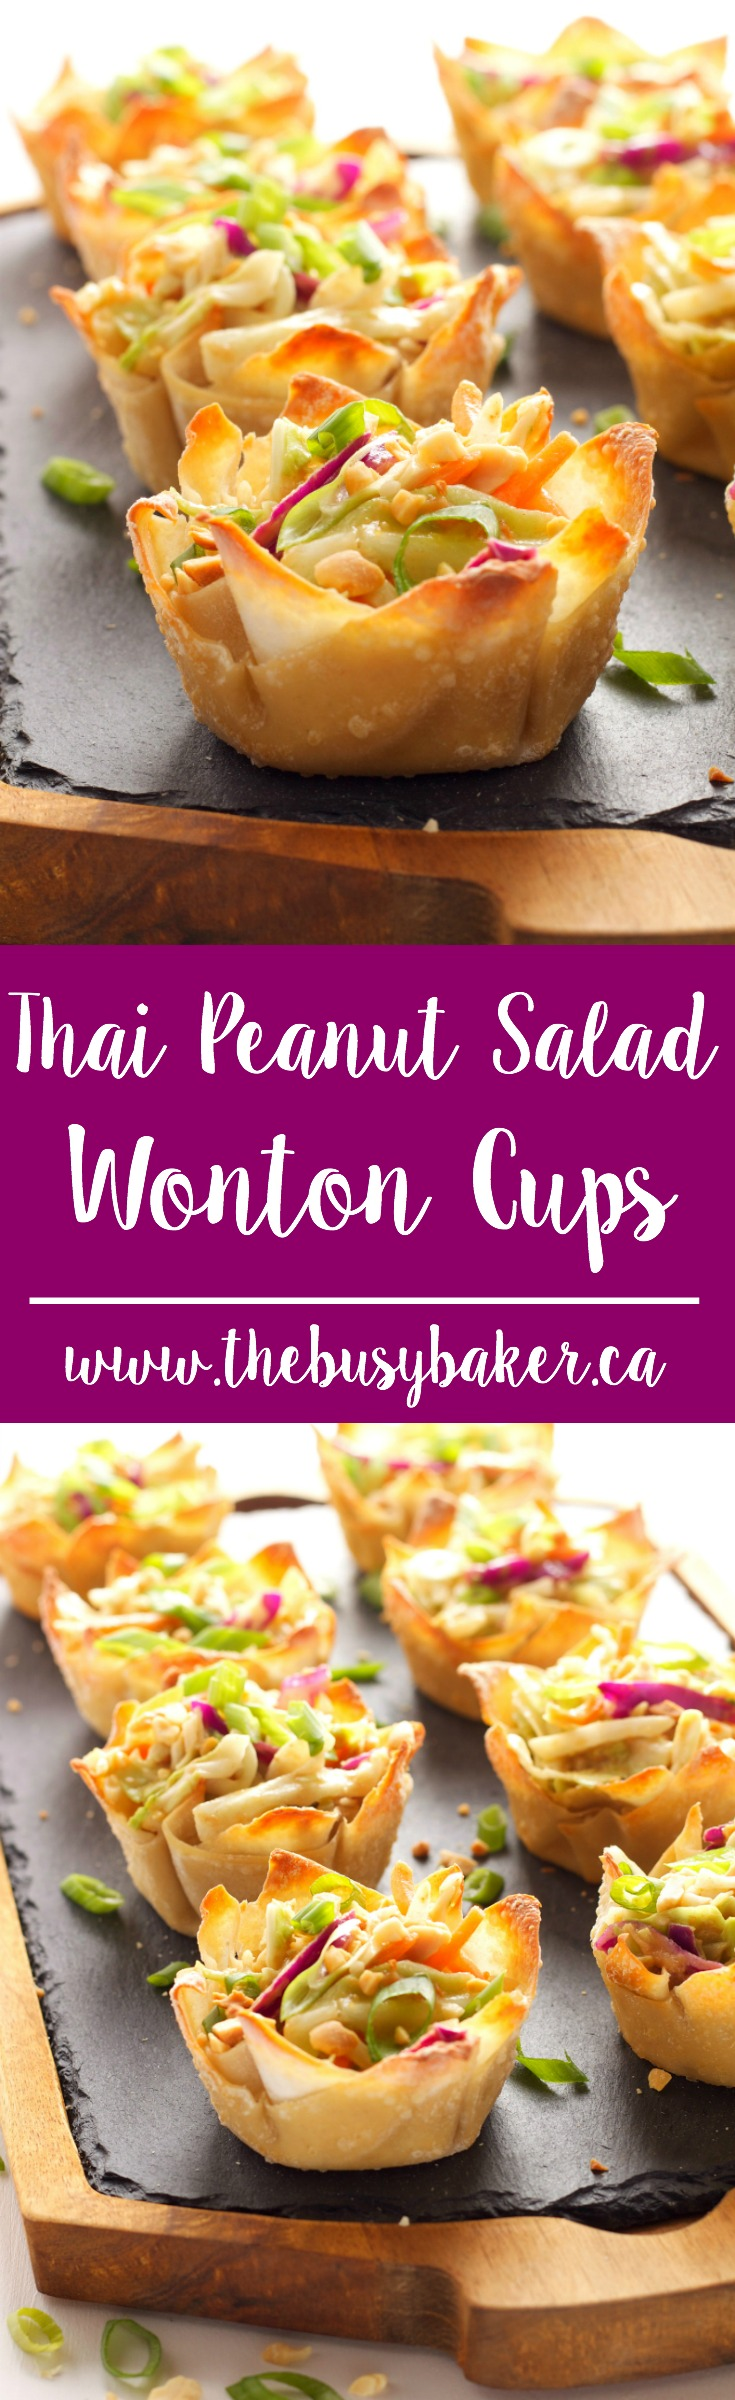 These Thai Peanut Salad Wonton Cups feature a delicious Thai-inspired peanut dressing over shredded veggies, topped with crushed peanuts! via @busybakerblog